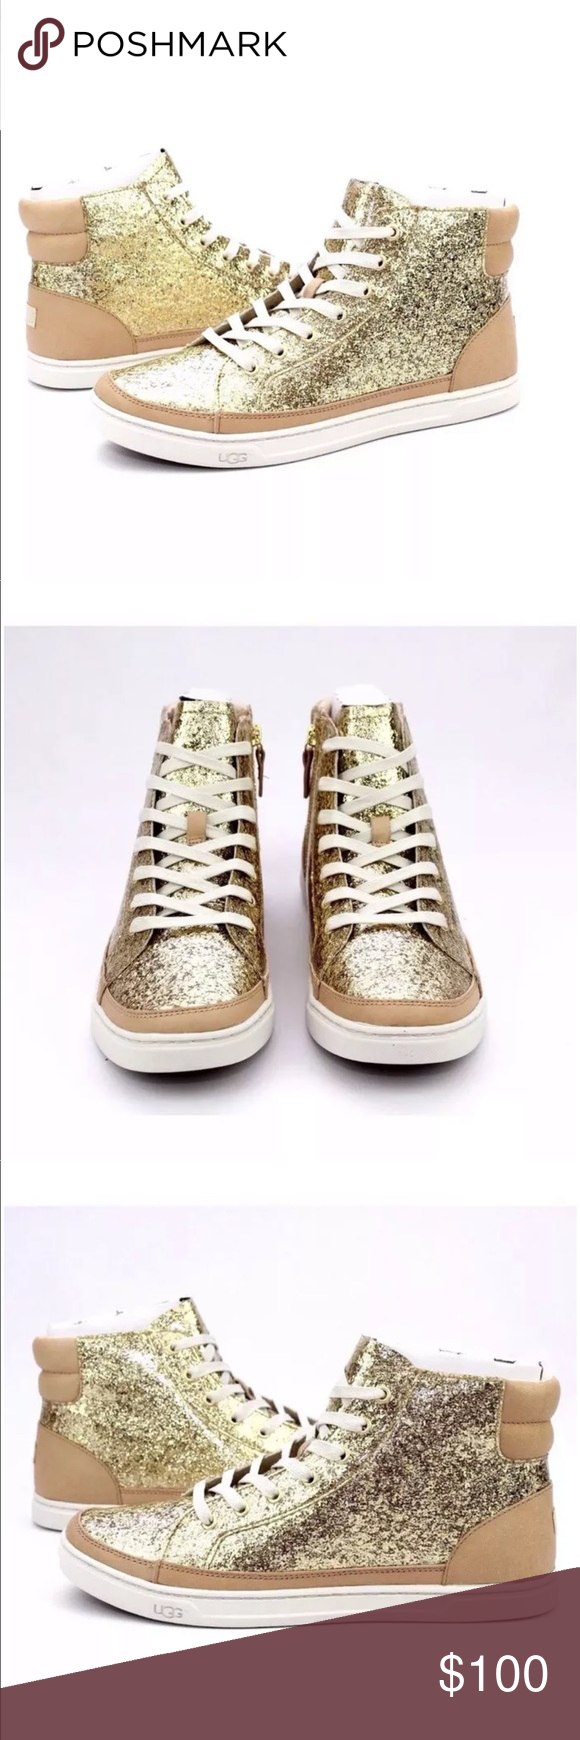 2954d02f606 UGG GRADIE GLITTER GOLD FASHION HIGH TOP SNEAKERS Here is what you ...